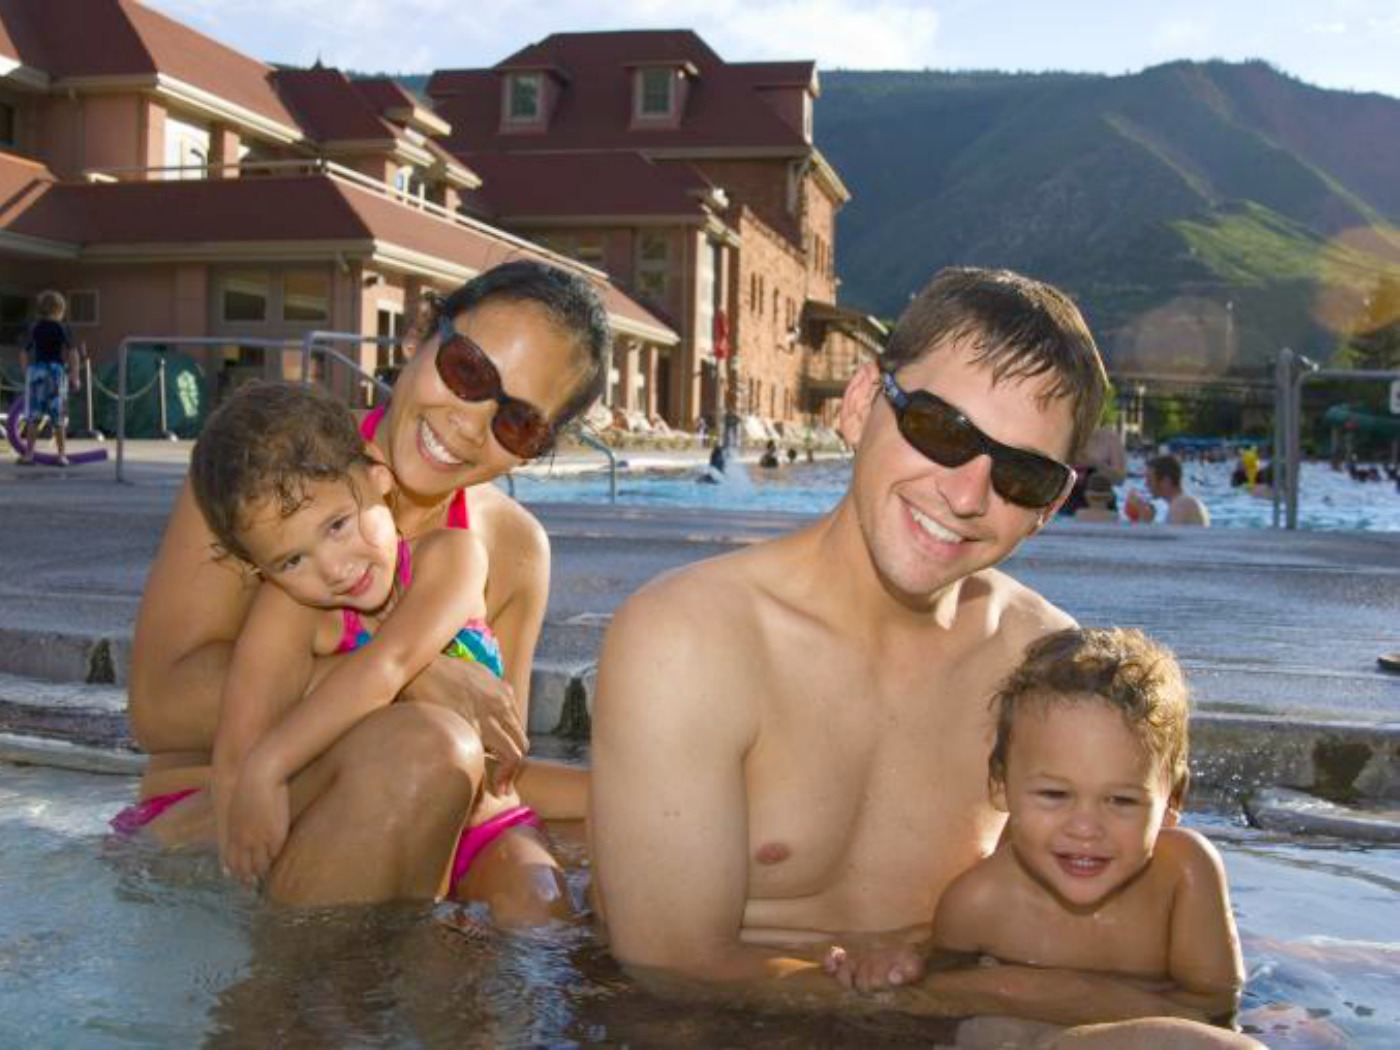 World's largest hot springs pool in Colorado